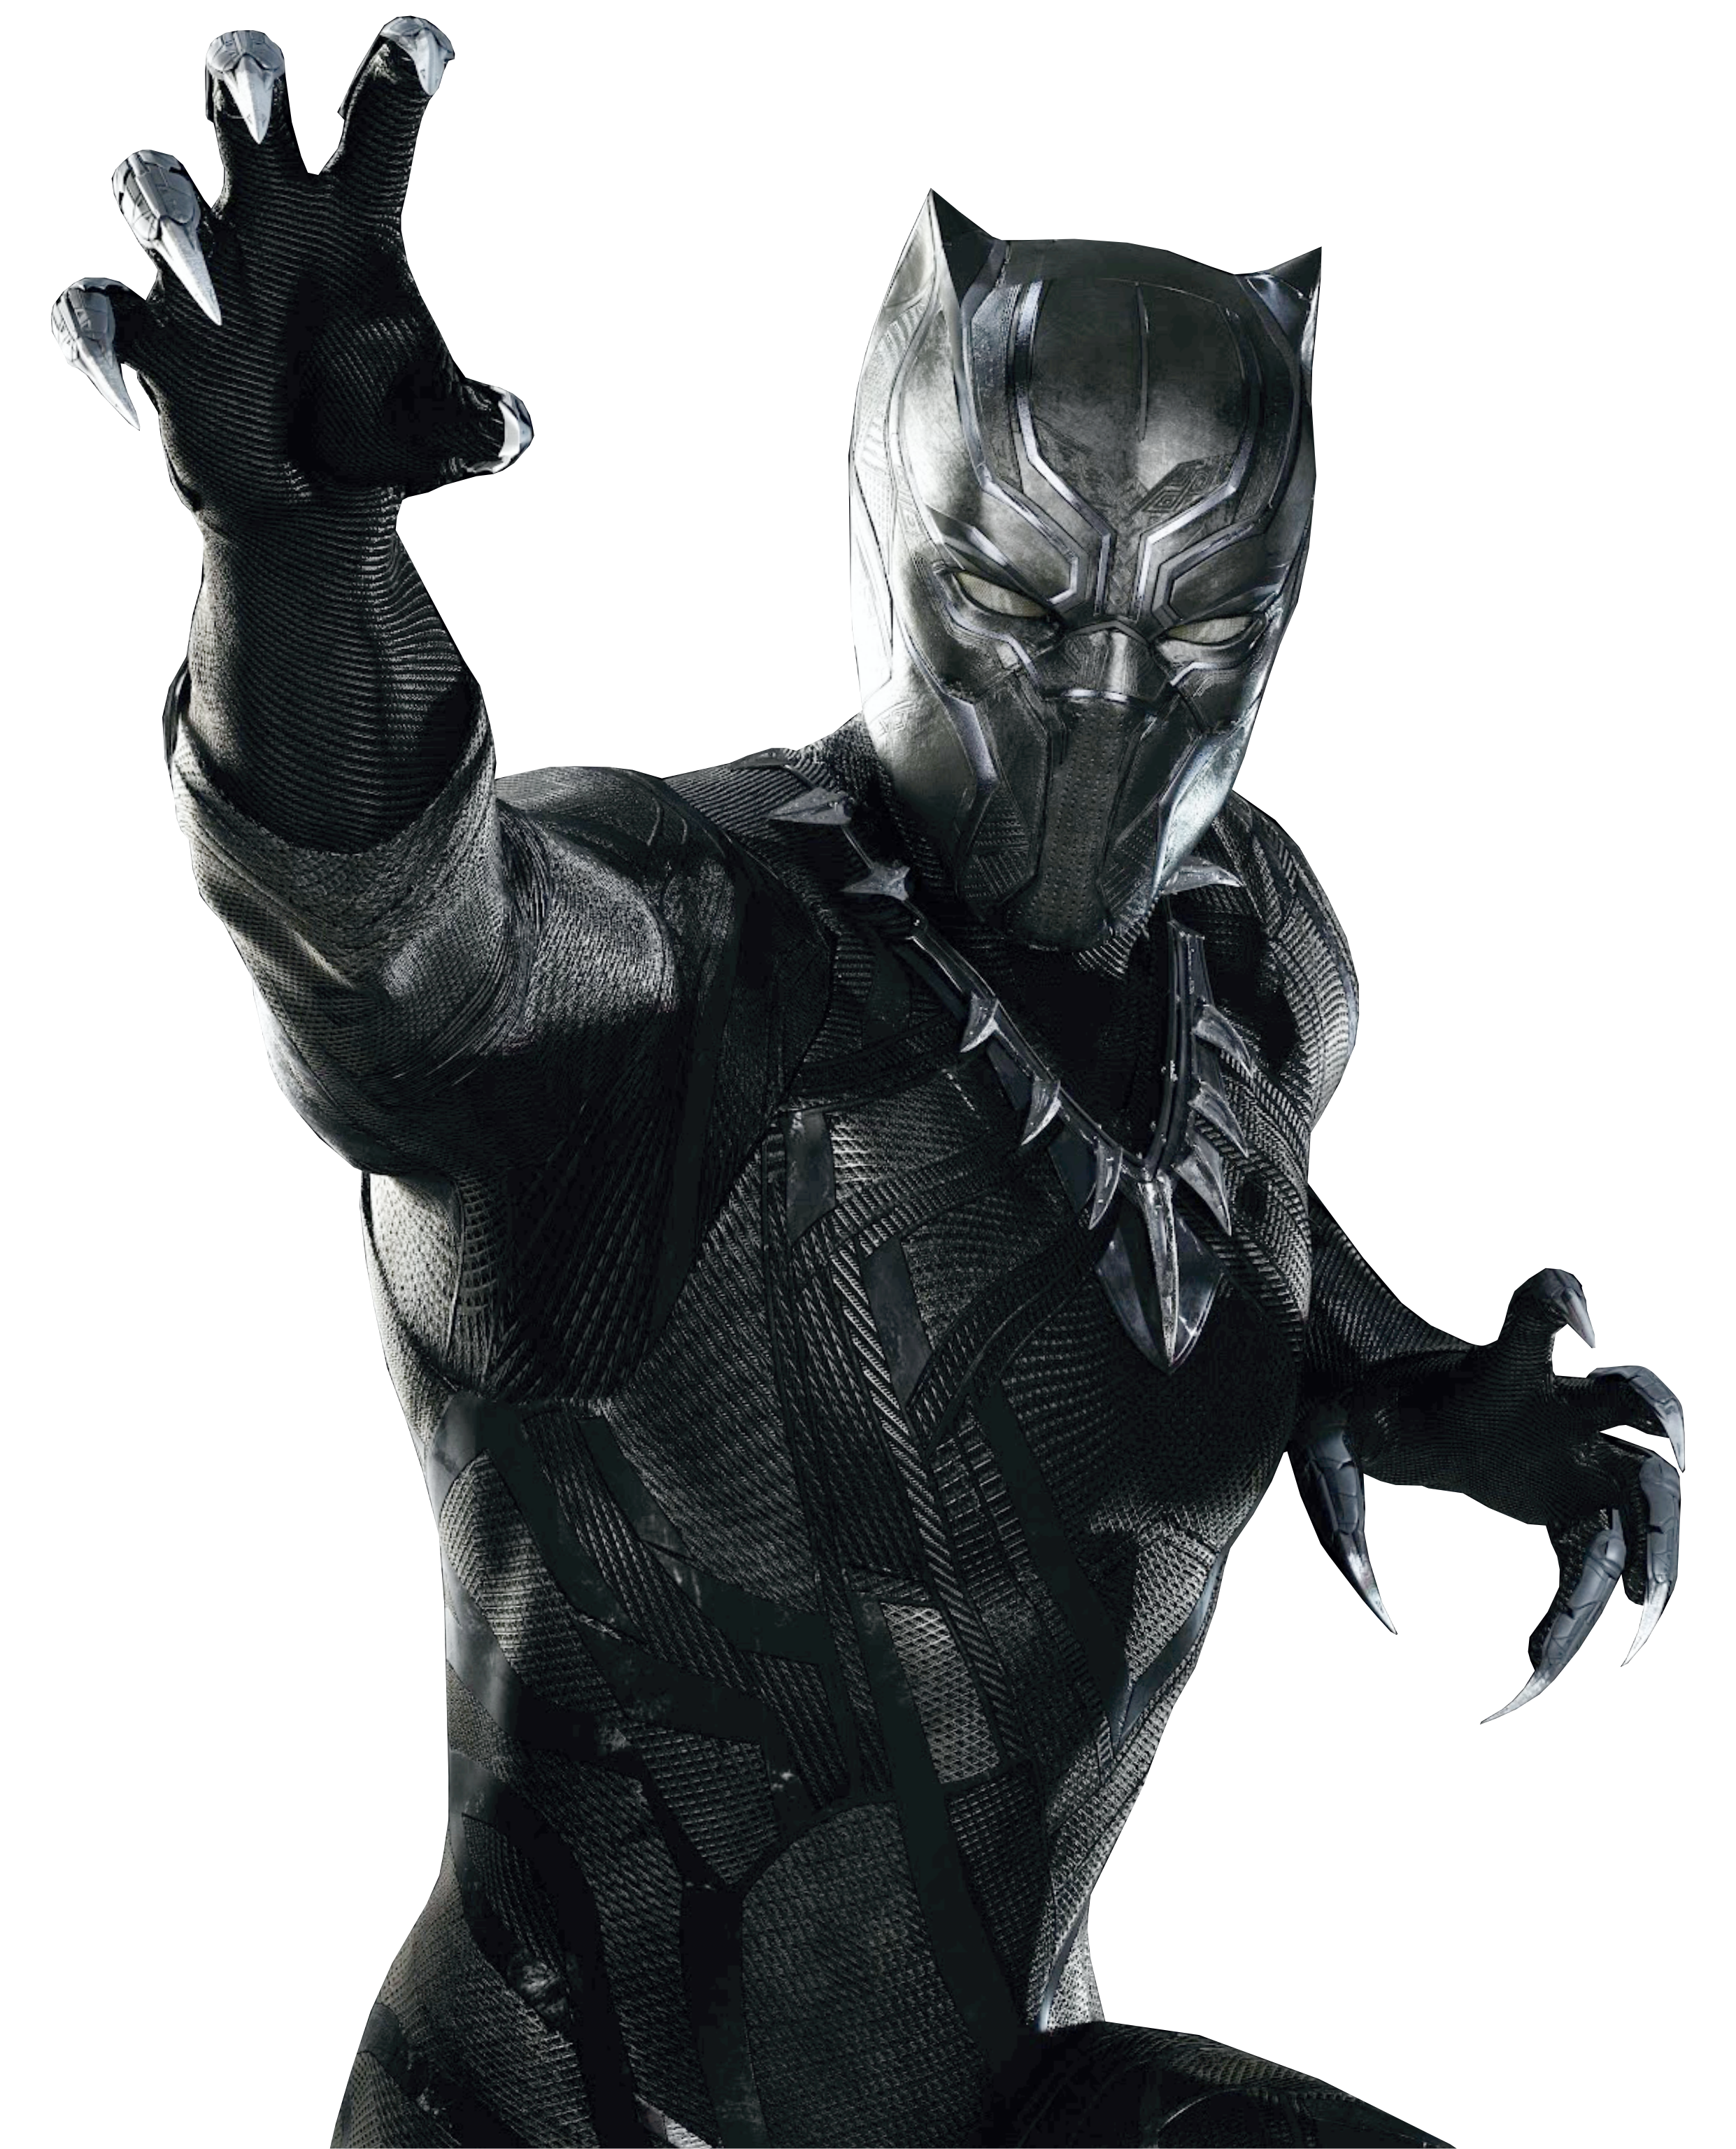 png 2482x3072 Black panther clear background - Black Panther PNG